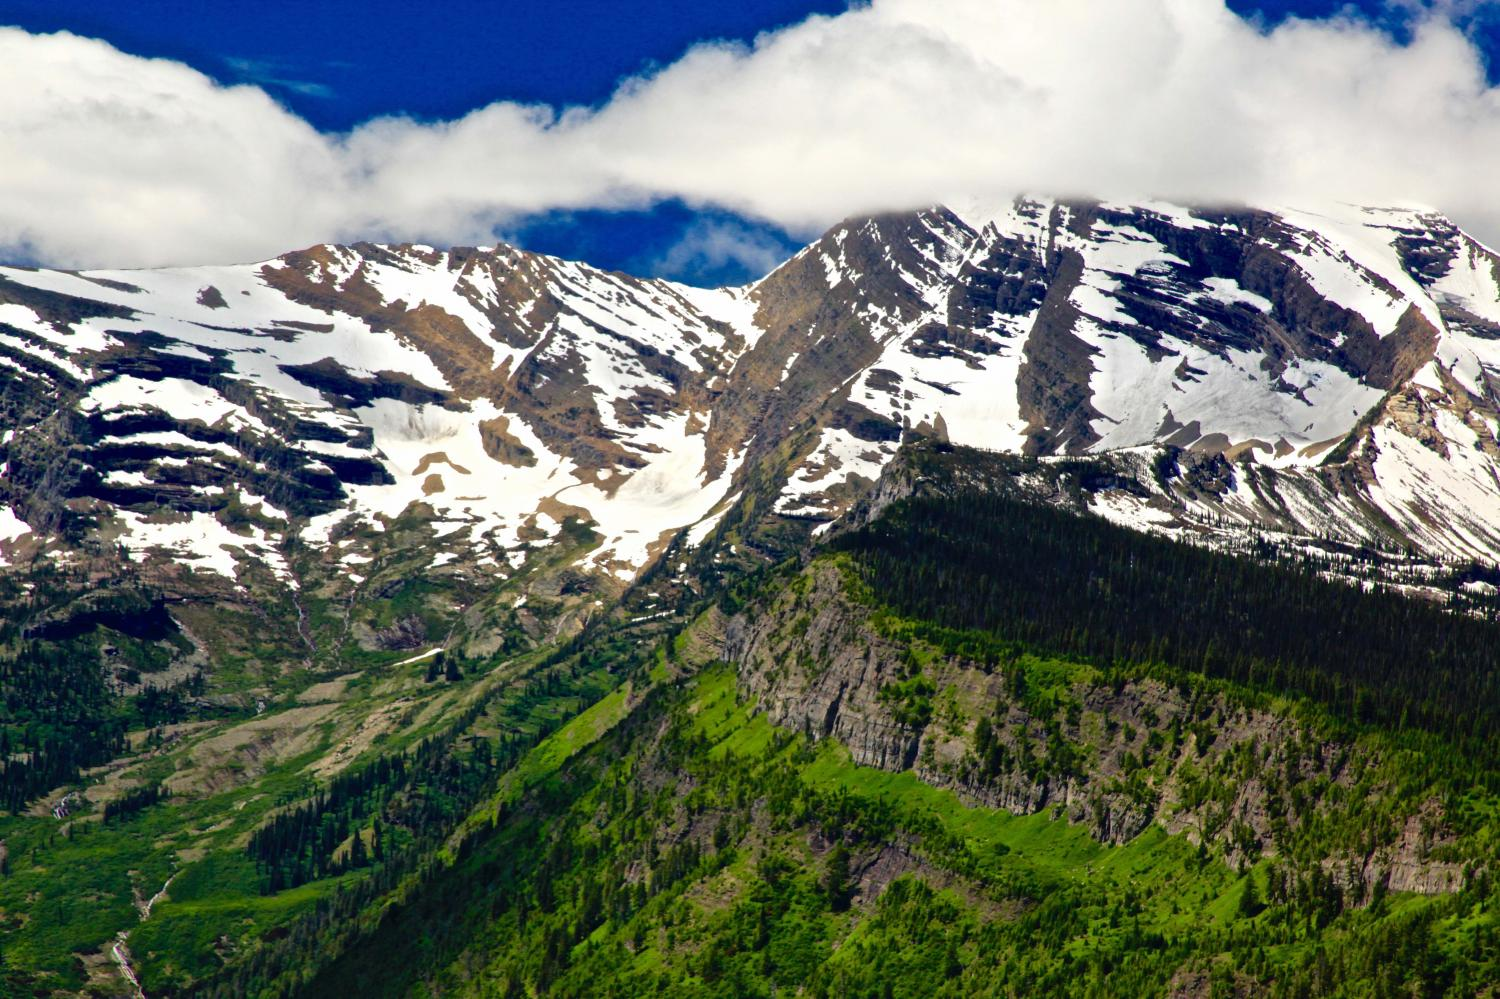 """GLACIER NATIONAL PARK ,THE LAND OF ASTONISHING CONTRAST - LUSH GREEN MEADOWS SET AGAINST THE  GLACIERS IS EXQUISITE -""""THE EARTH SHOWS FORTH GOD'S HANDIWORK""""-GOING TO THE SUN HIGHWAY IS A GREAT PLACE TO HOLD A PRAISE SESSION"""